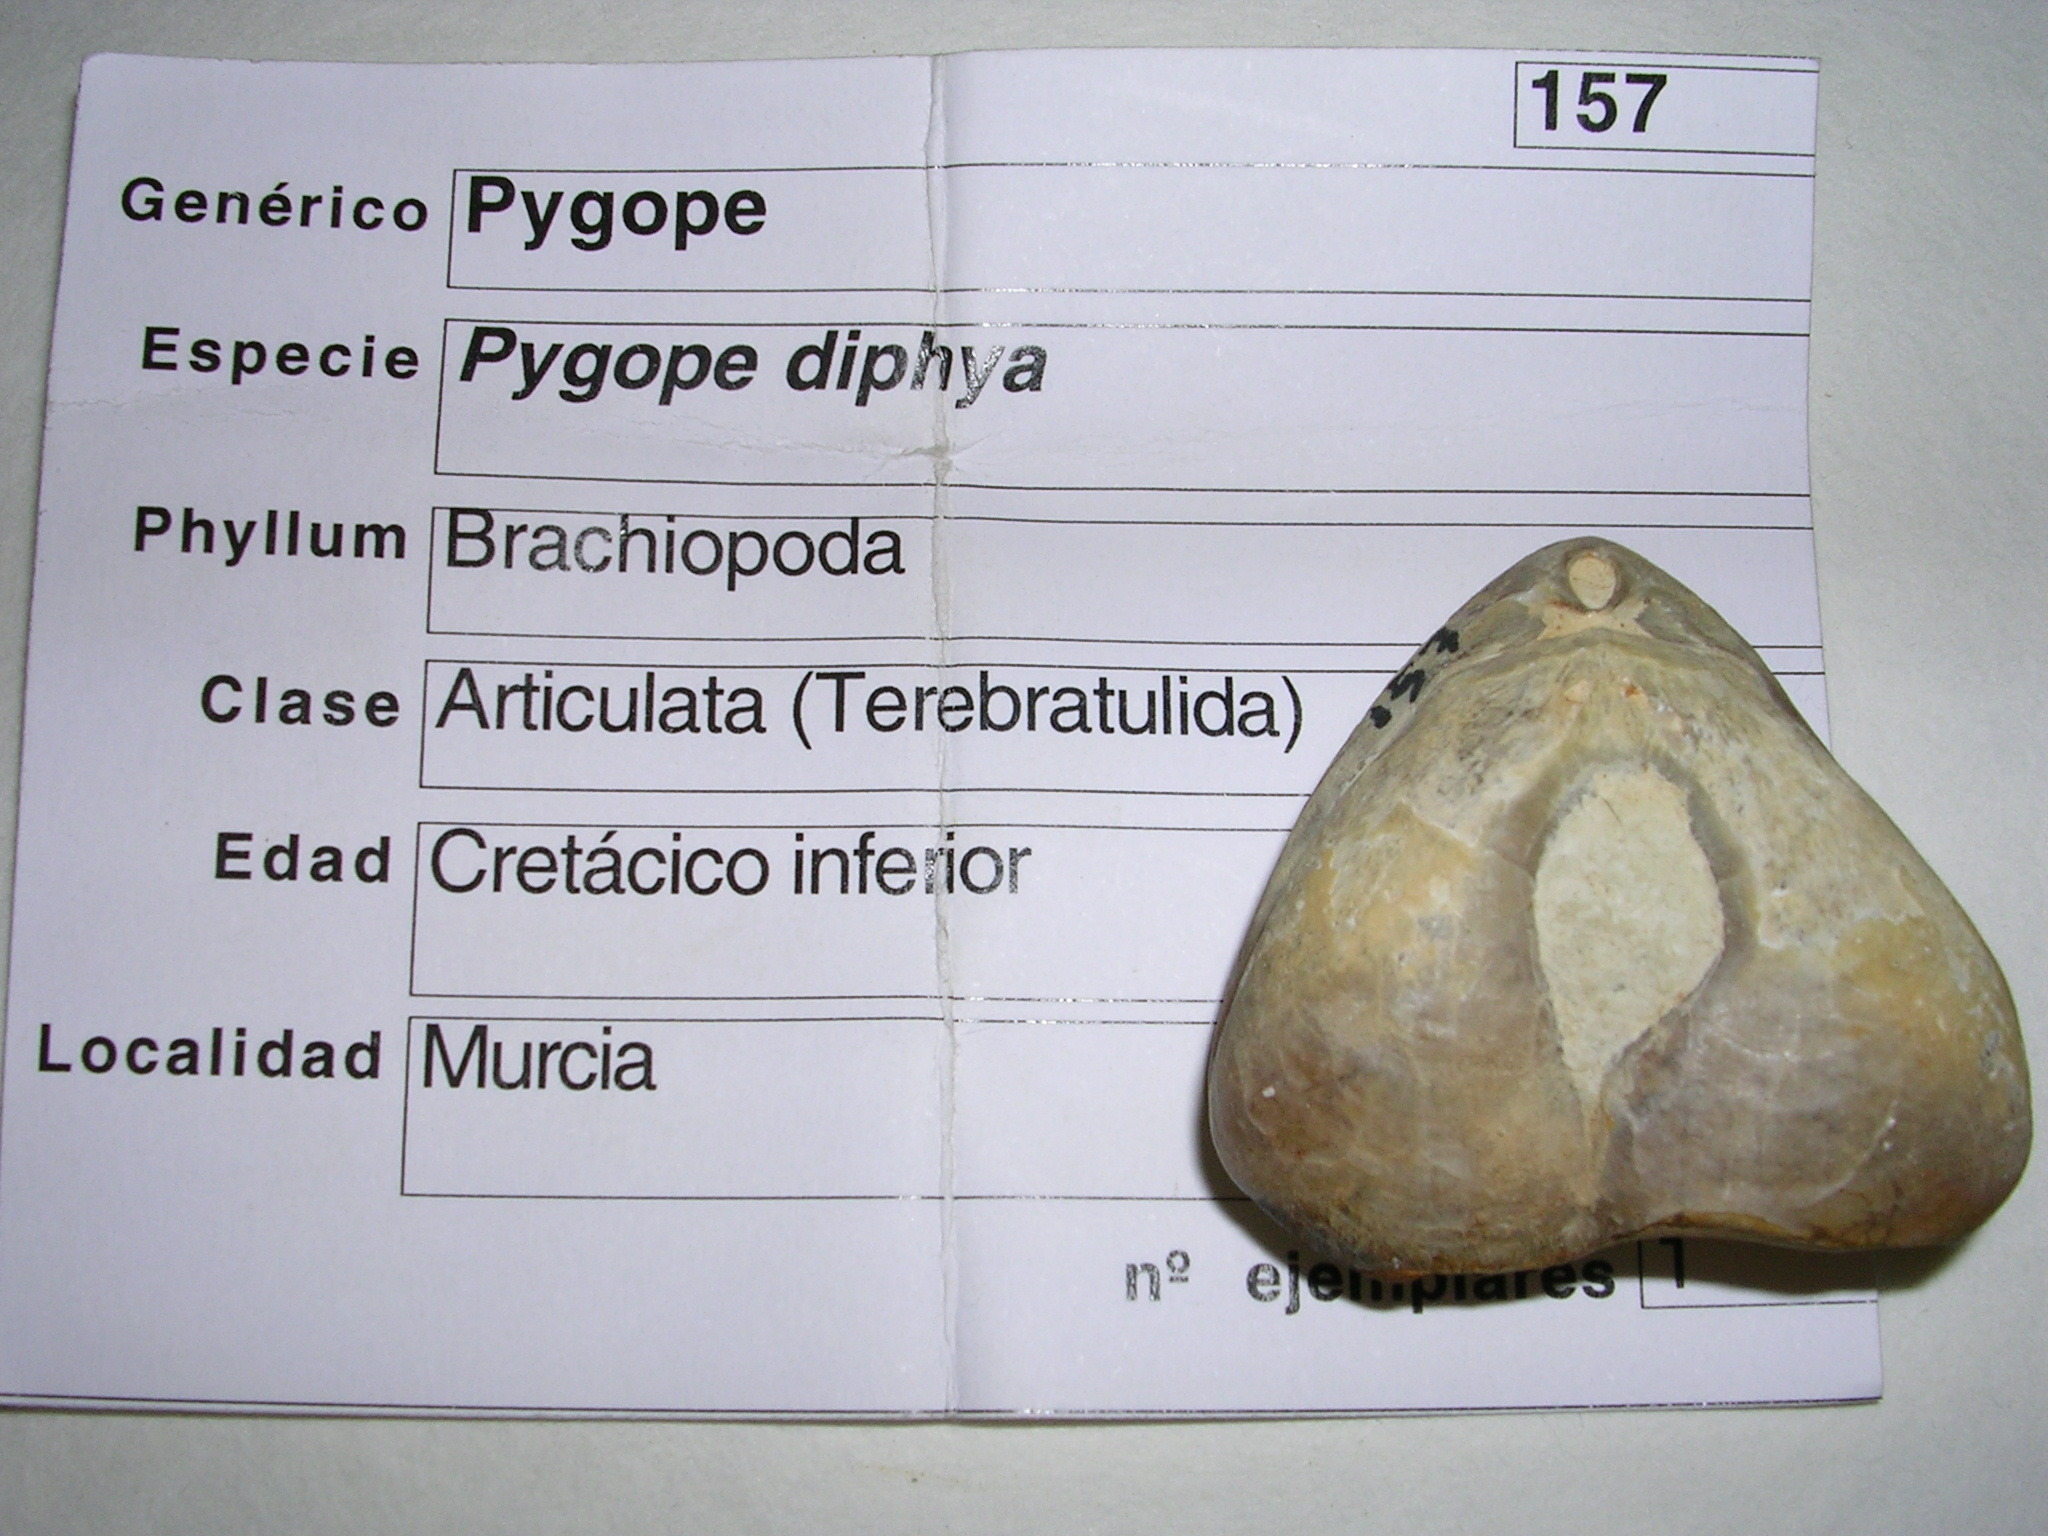 Image of Pygope